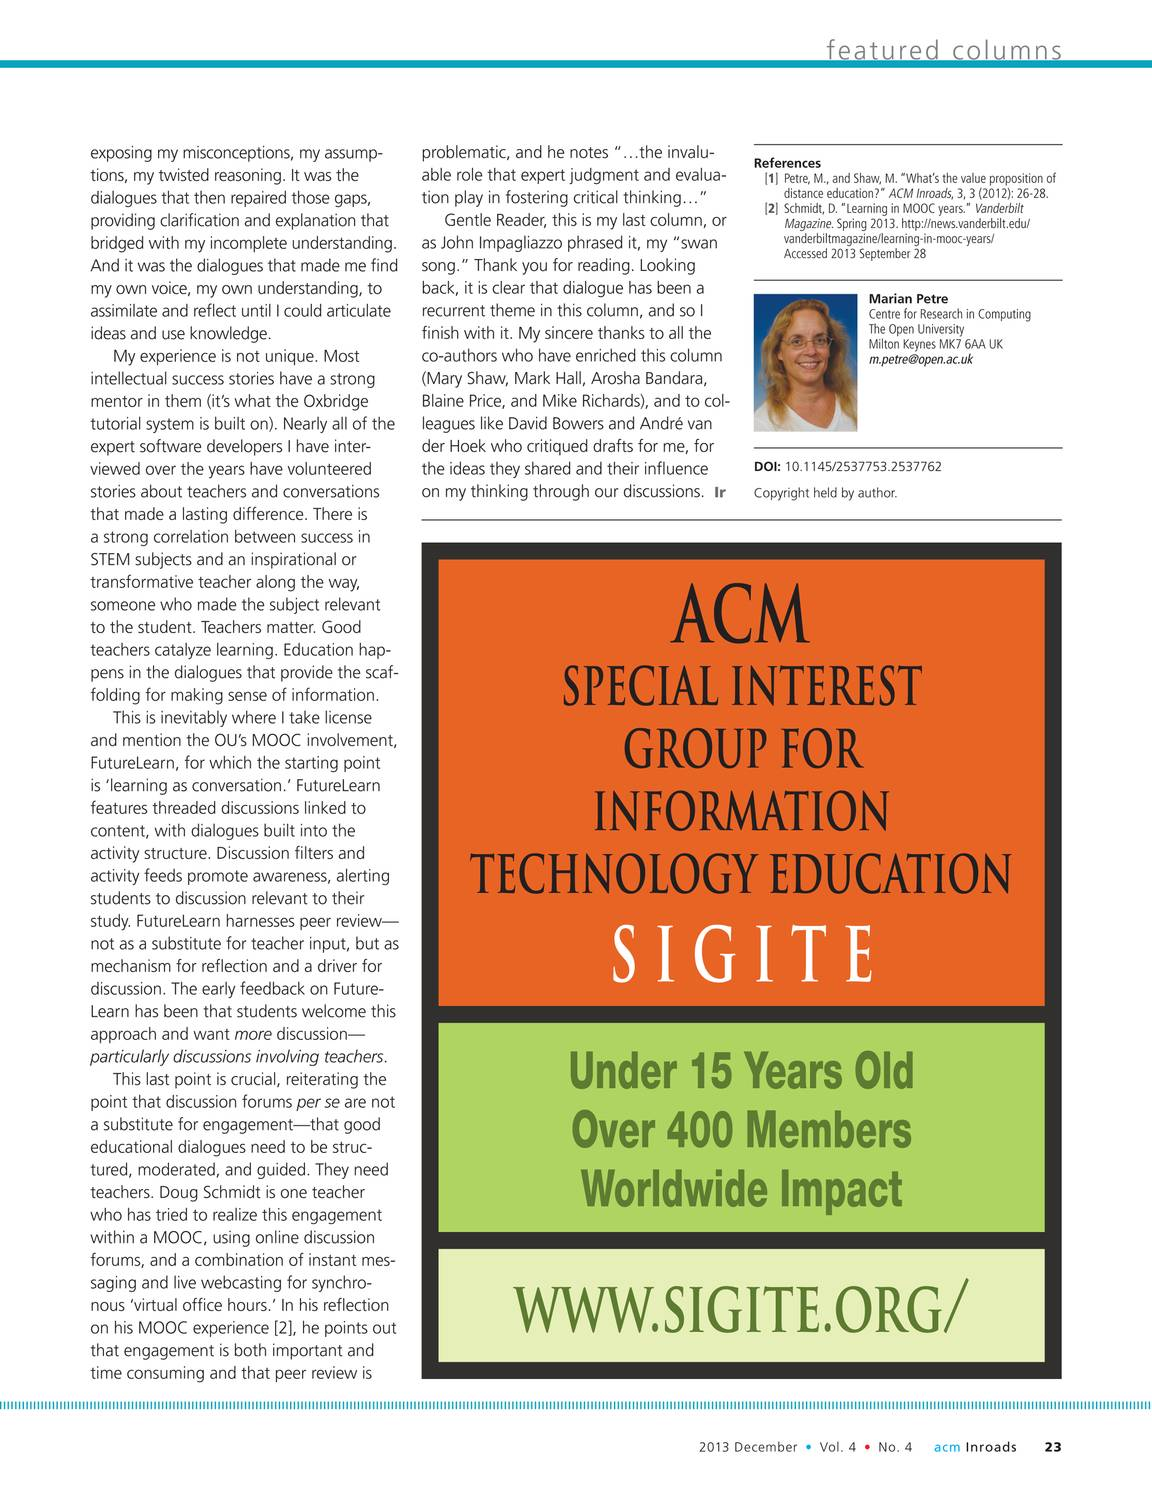 Inroads - December 2013 - page 24